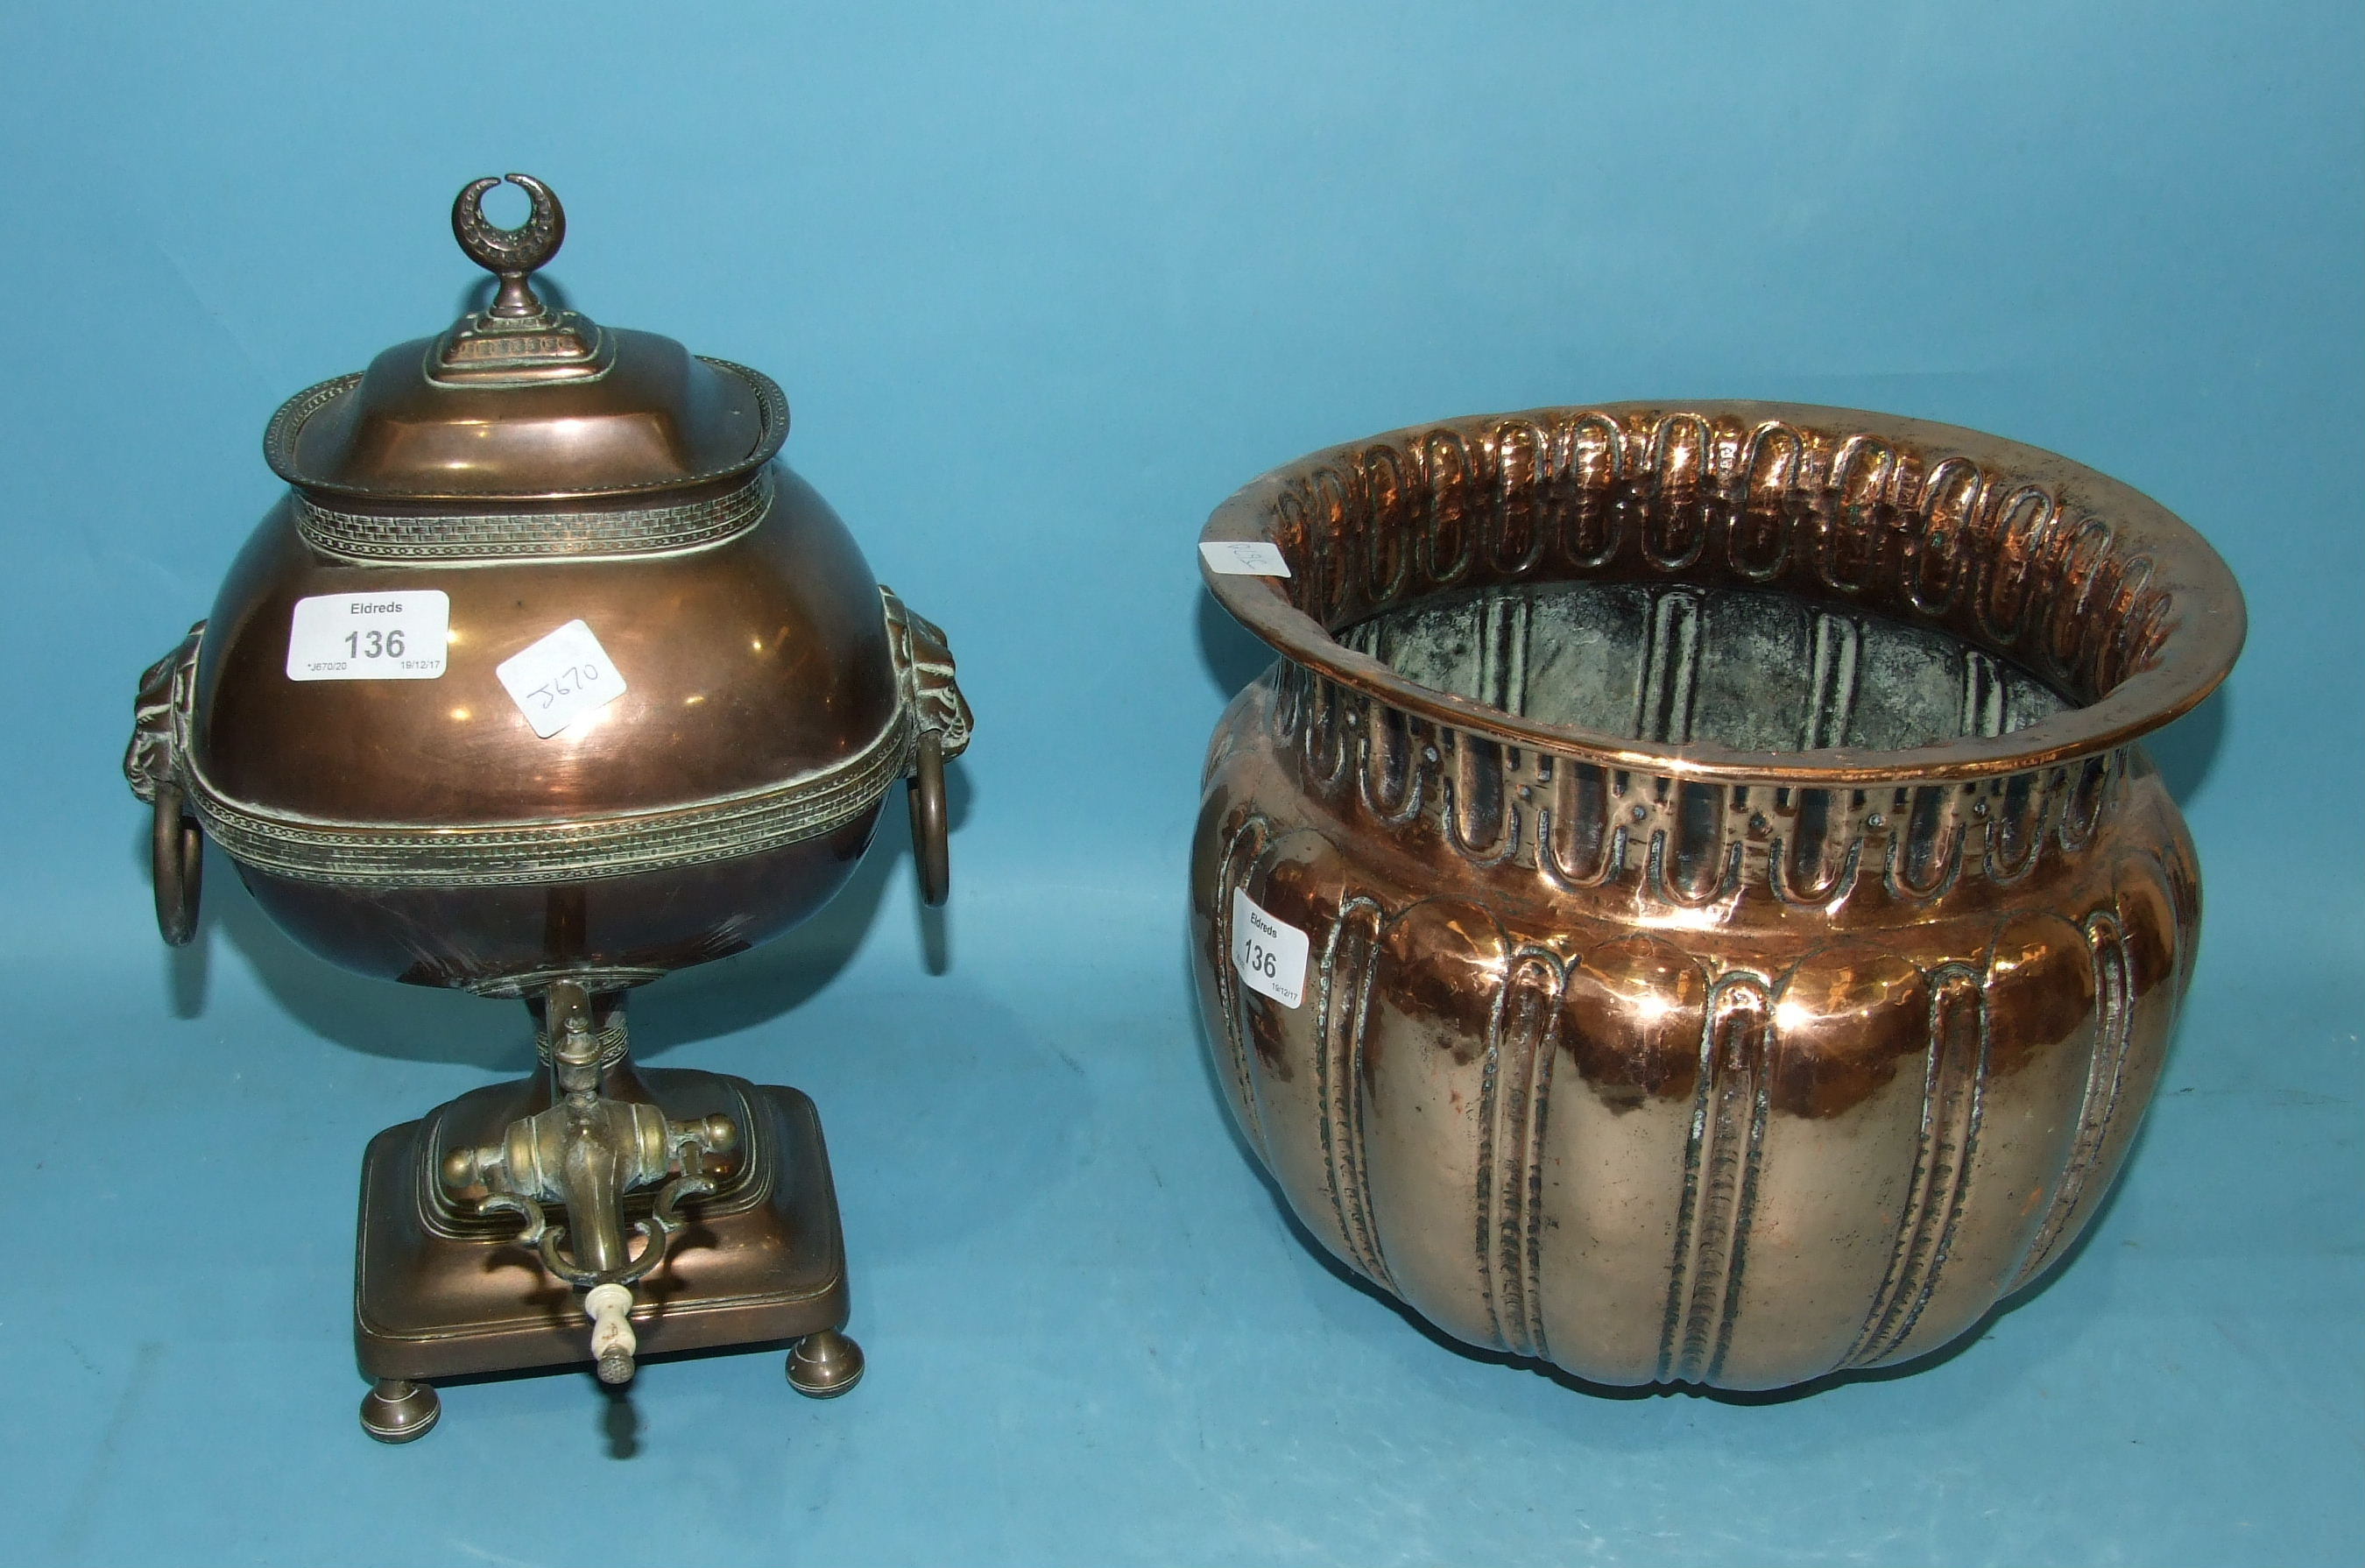 Lot 136 - A 19th century Asian copper samovar, the lion mask ring handles and brass tap complete with interior